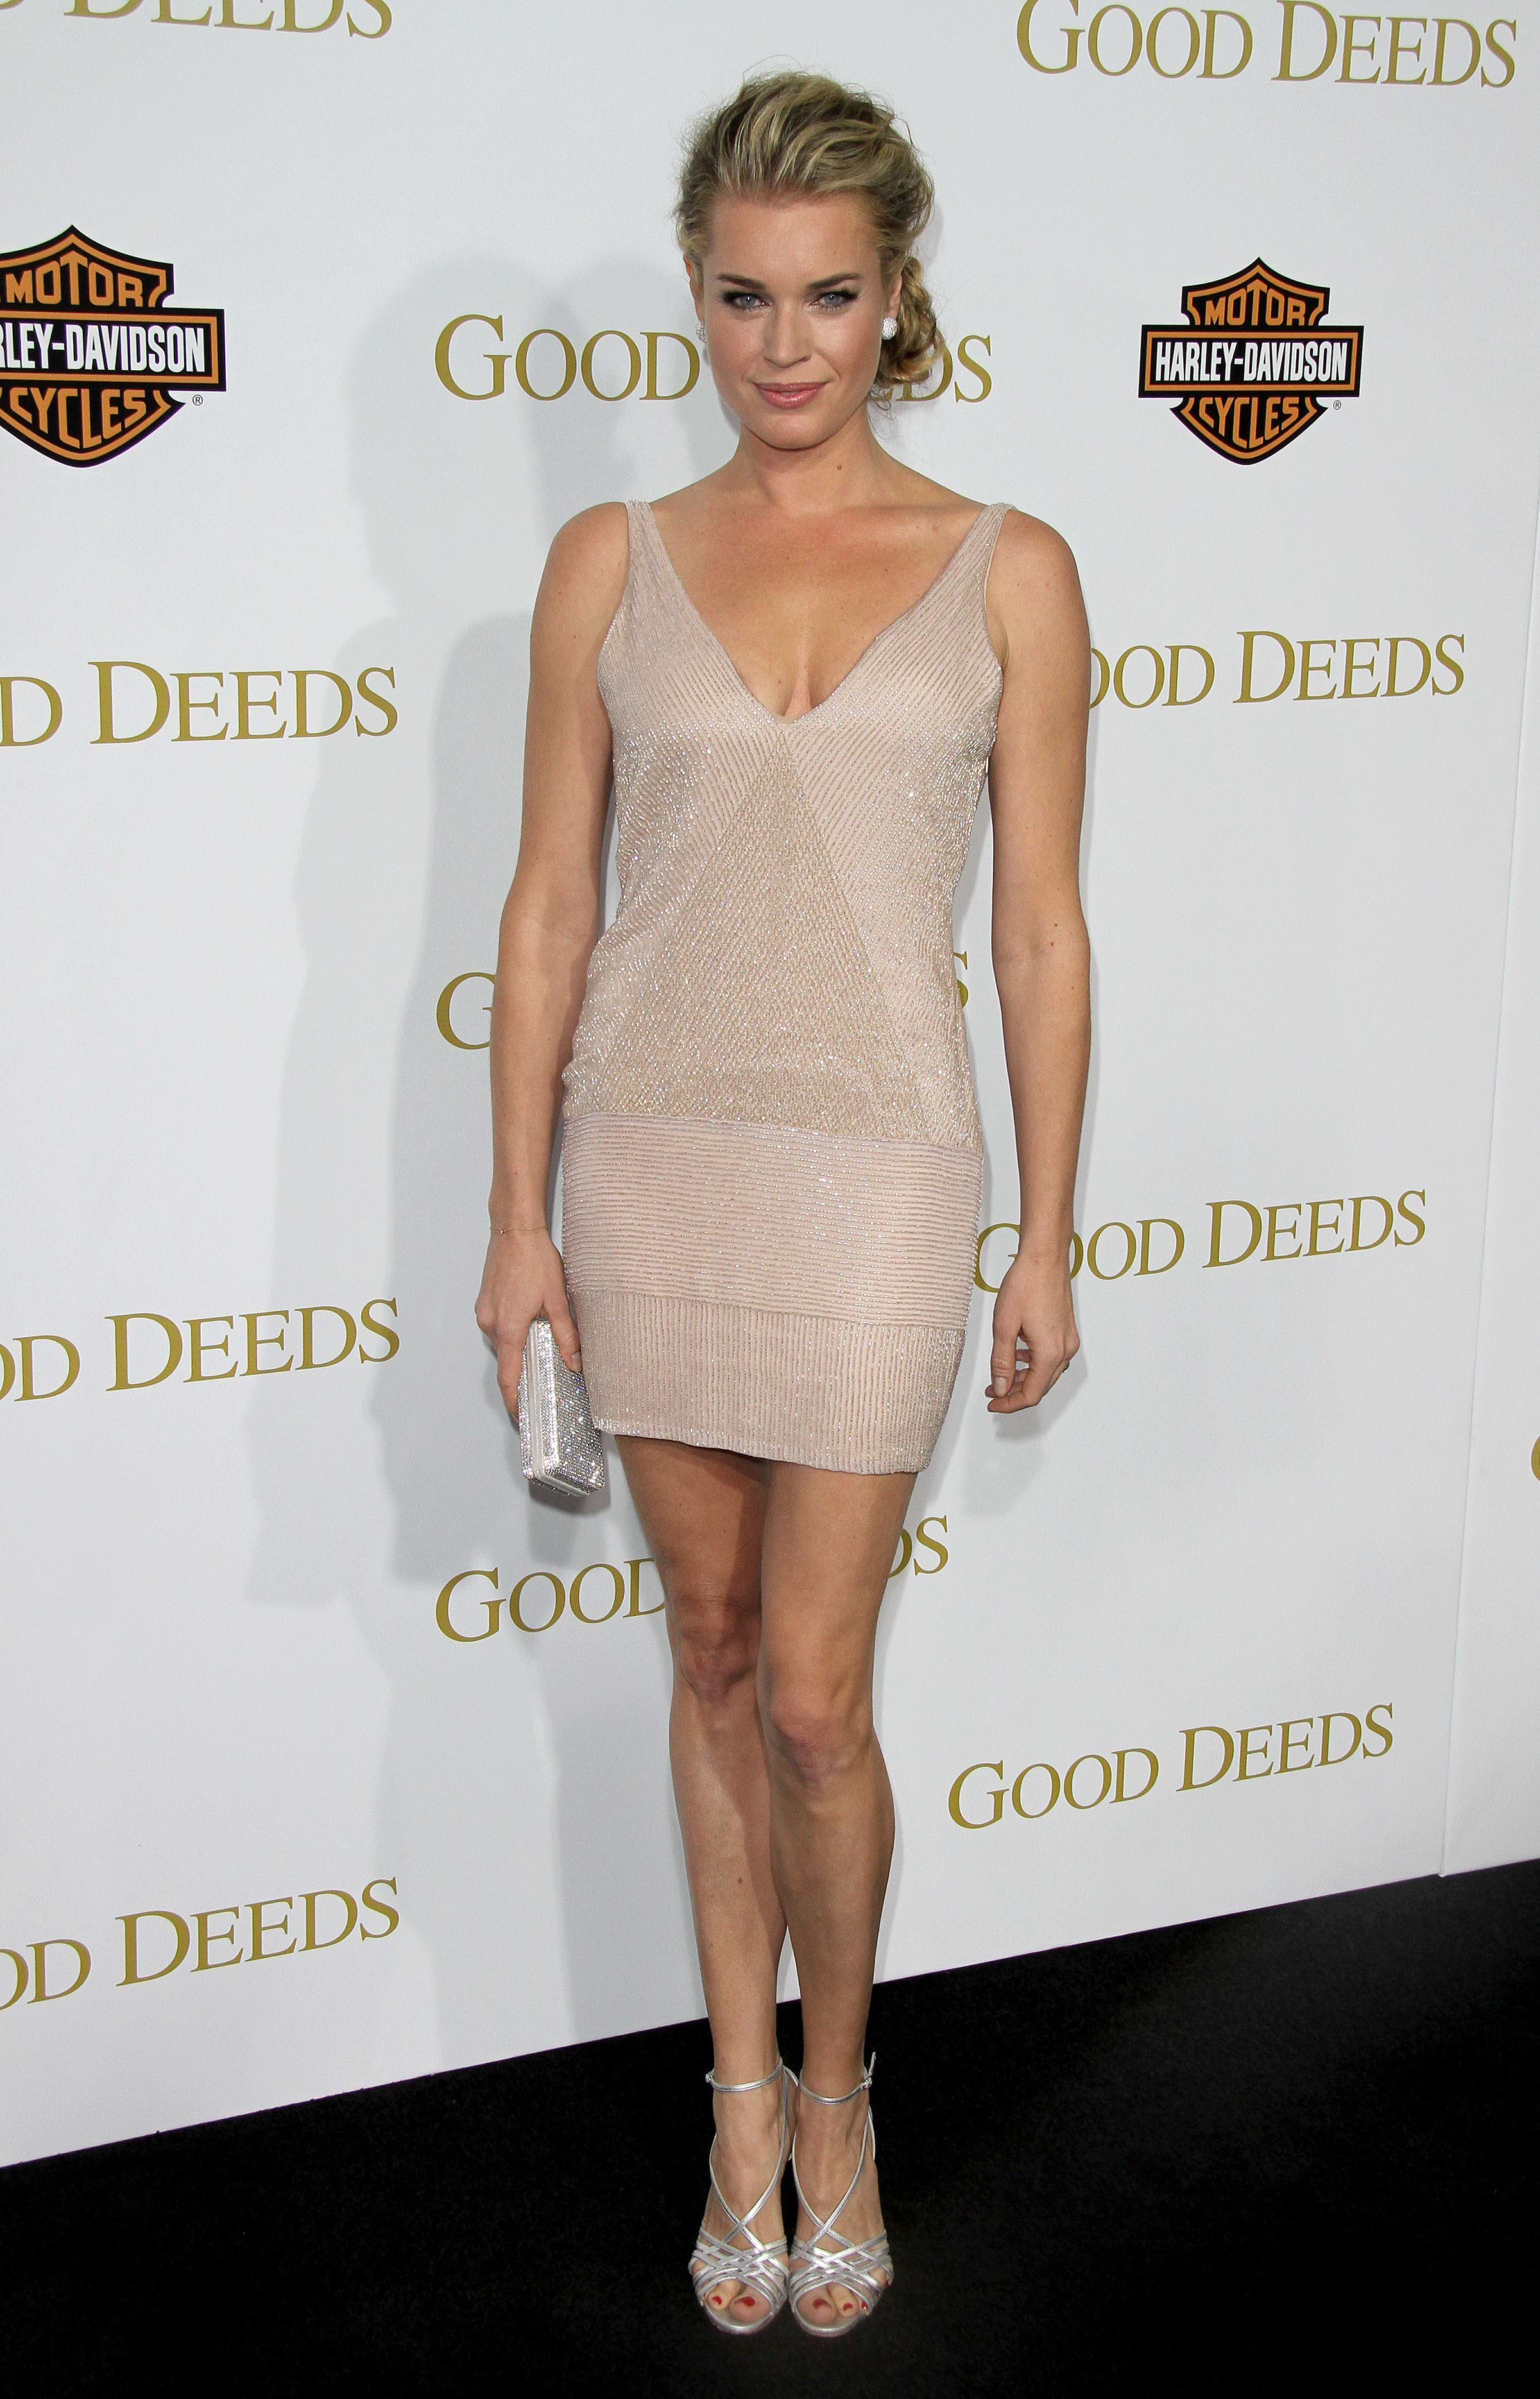 Just doesnt do it for me - Rebecca romijn measurements ...